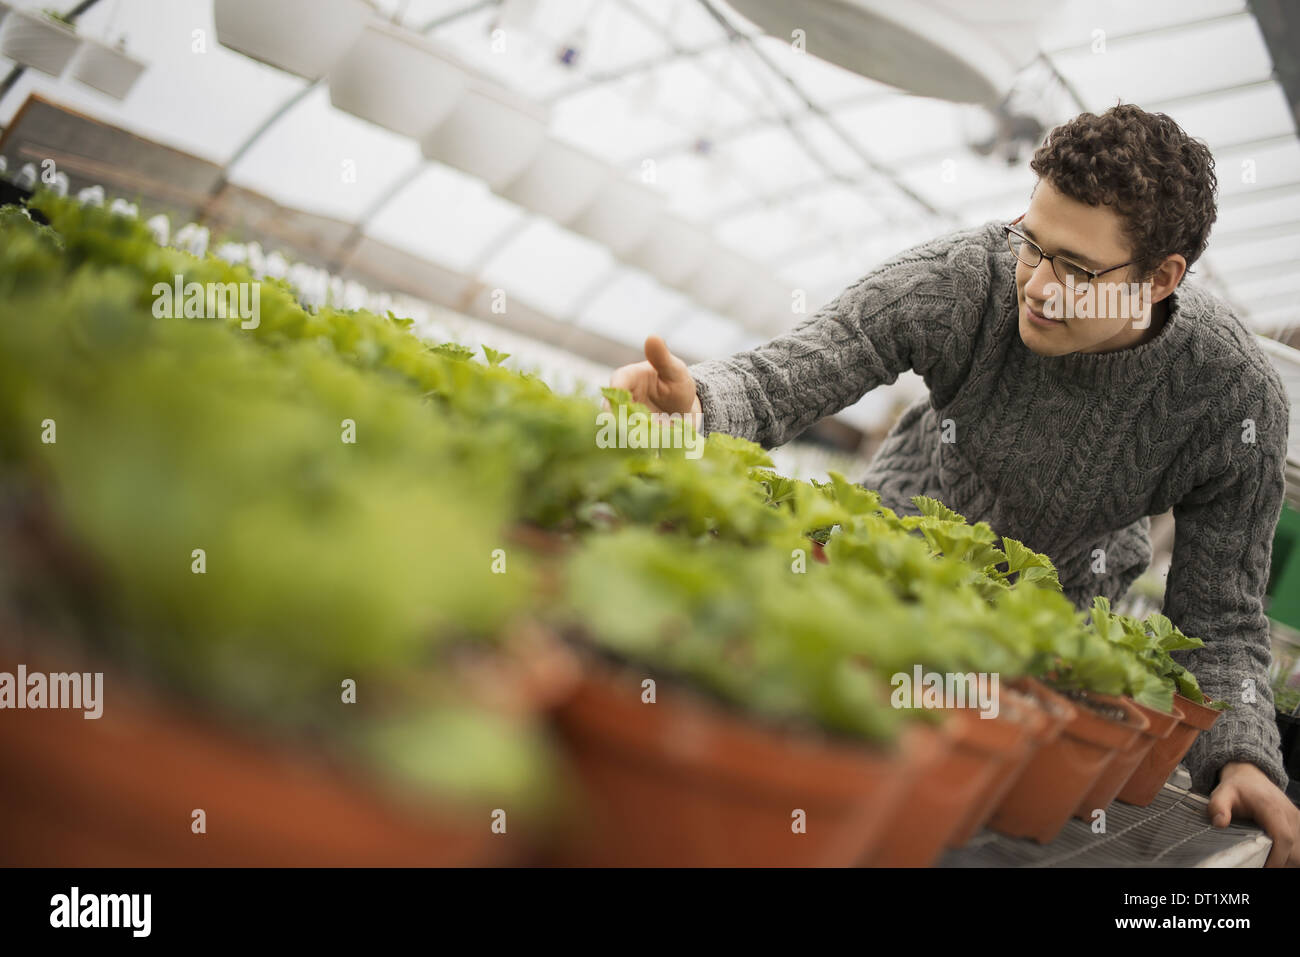 A man working in a greenhouse tending young plants in pots - Stock Image